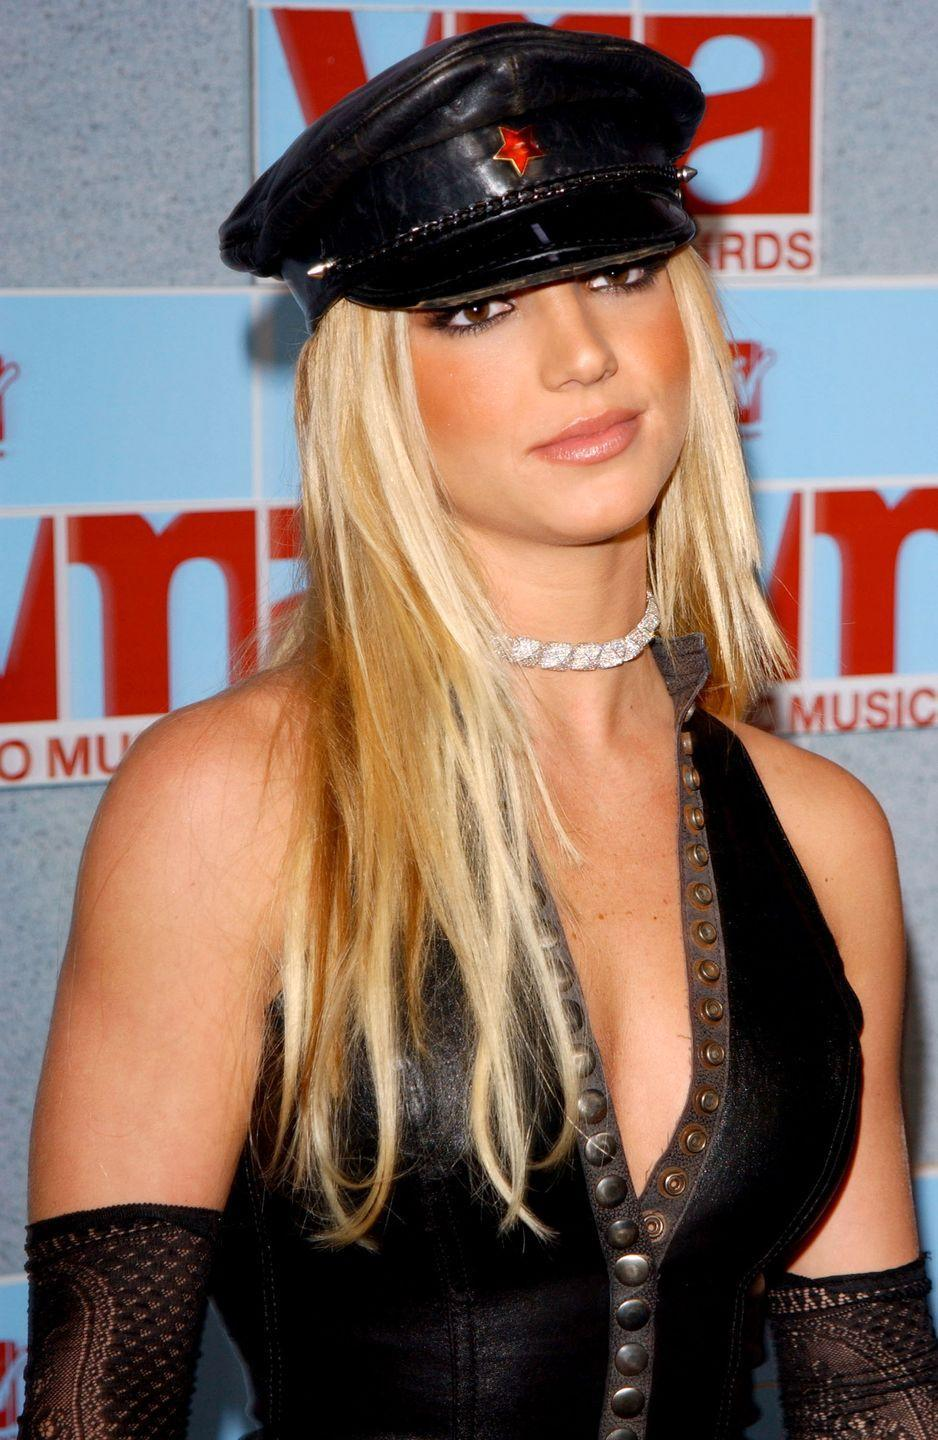 <p>Alas, another hat! Britney topped blunt layers and bright blonde hair with a leather Breton hat for the 2002 MTV Music Video Awards. </p>